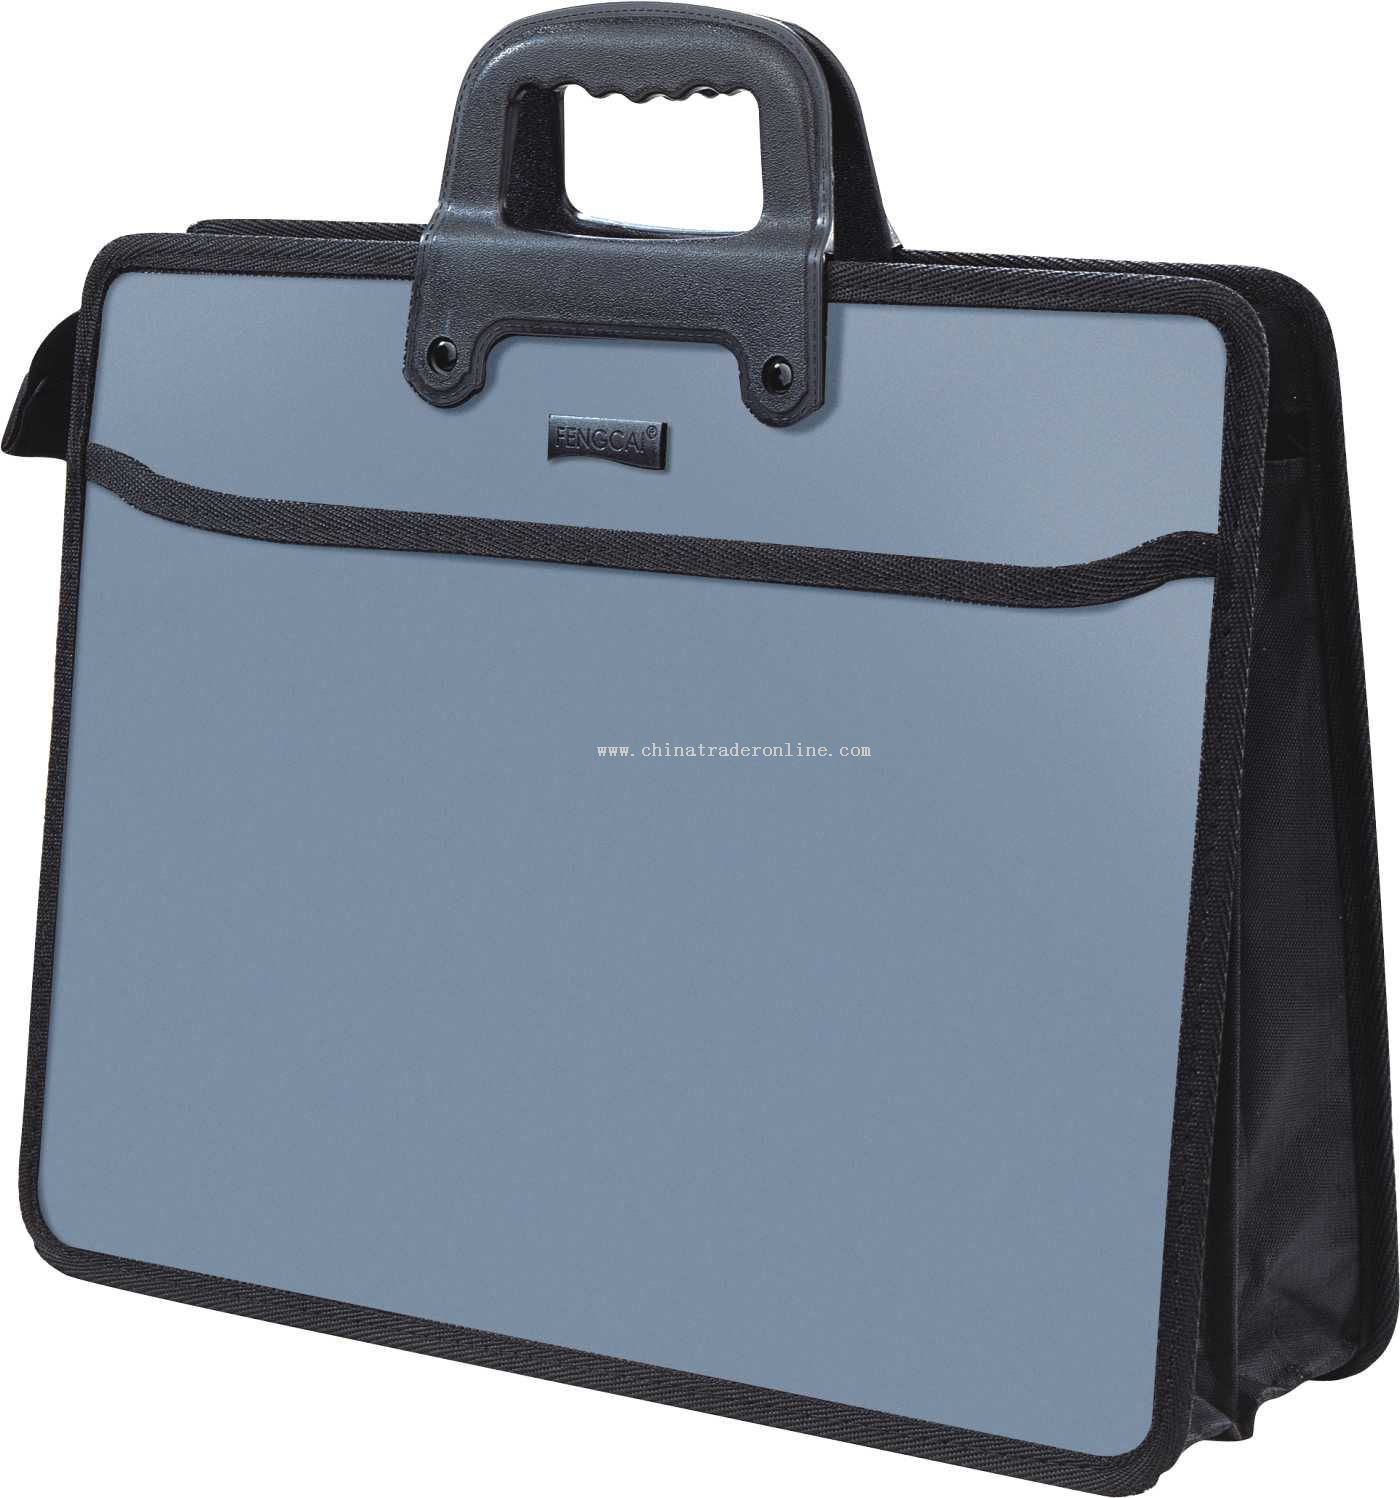 Multilayer business bag from China